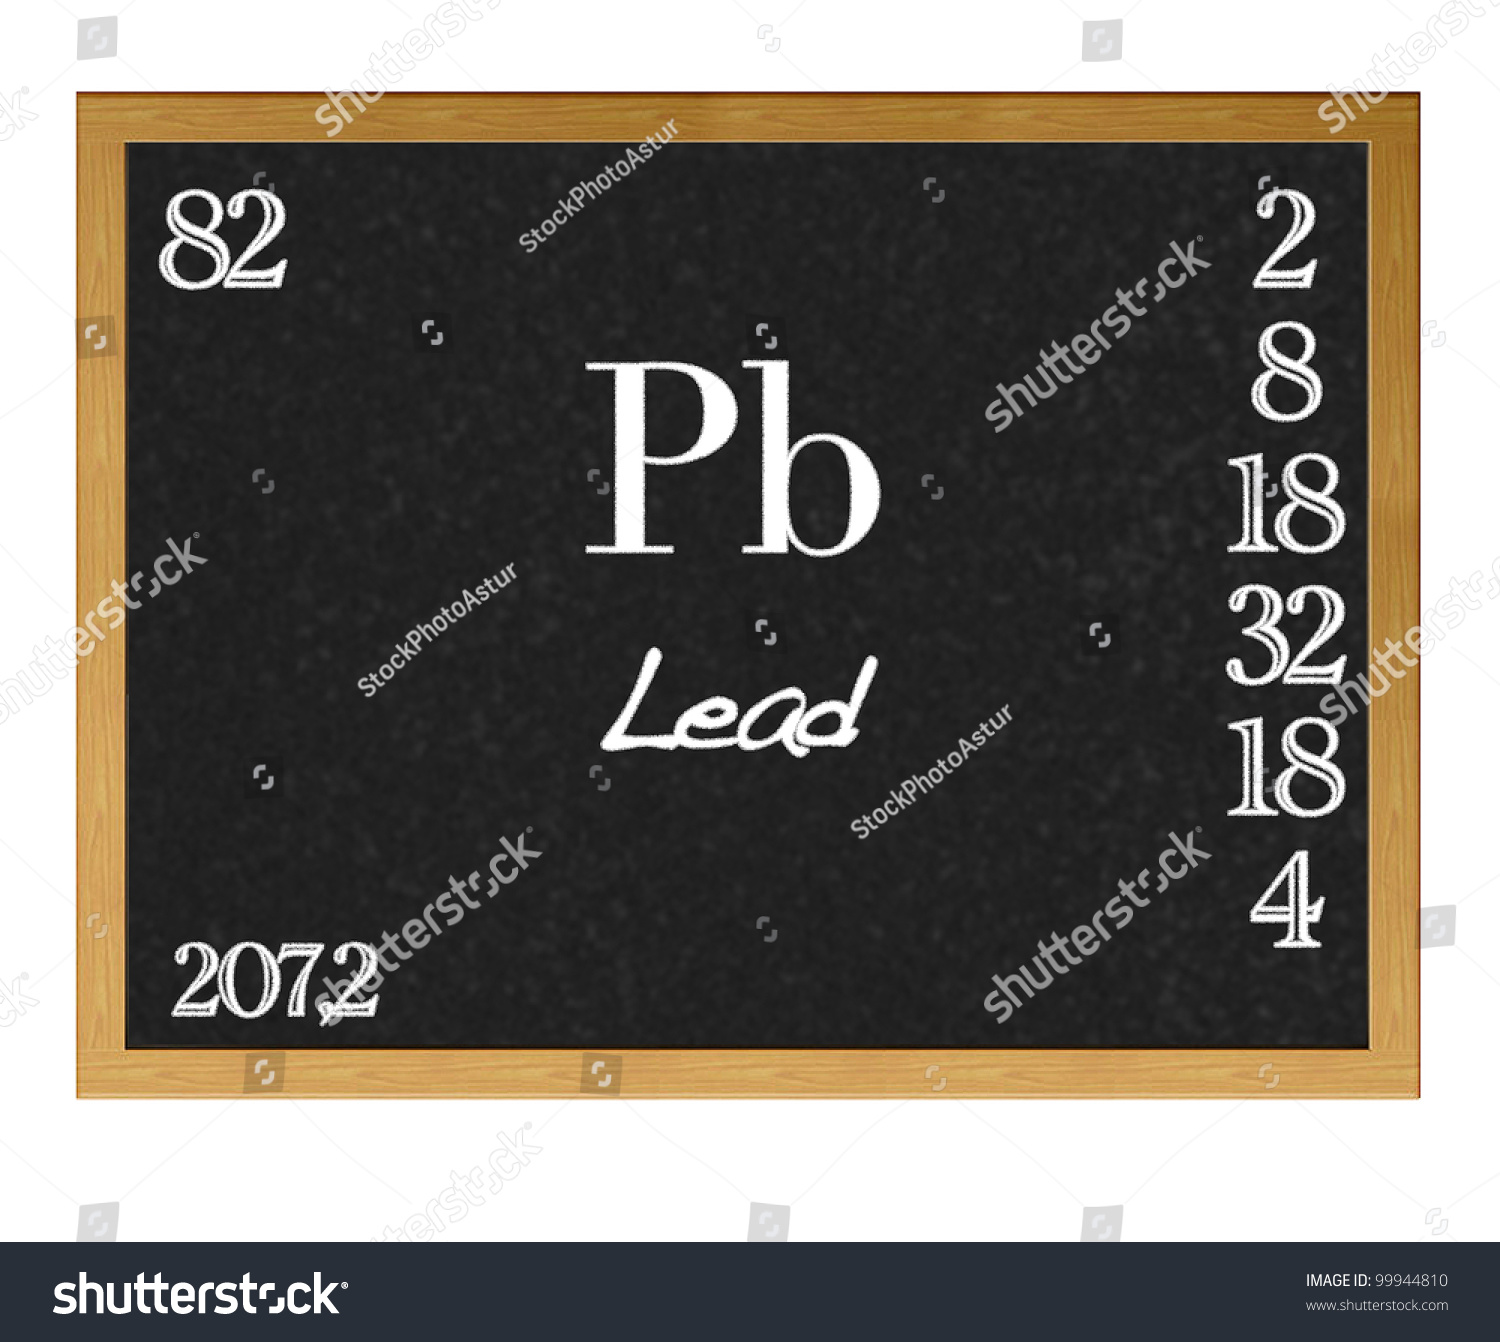 Lead periodic table symbol images periodic table images symbol for lead on periodic table image collections periodic symbol for lead on periodic table images gamestrikefo Gallery